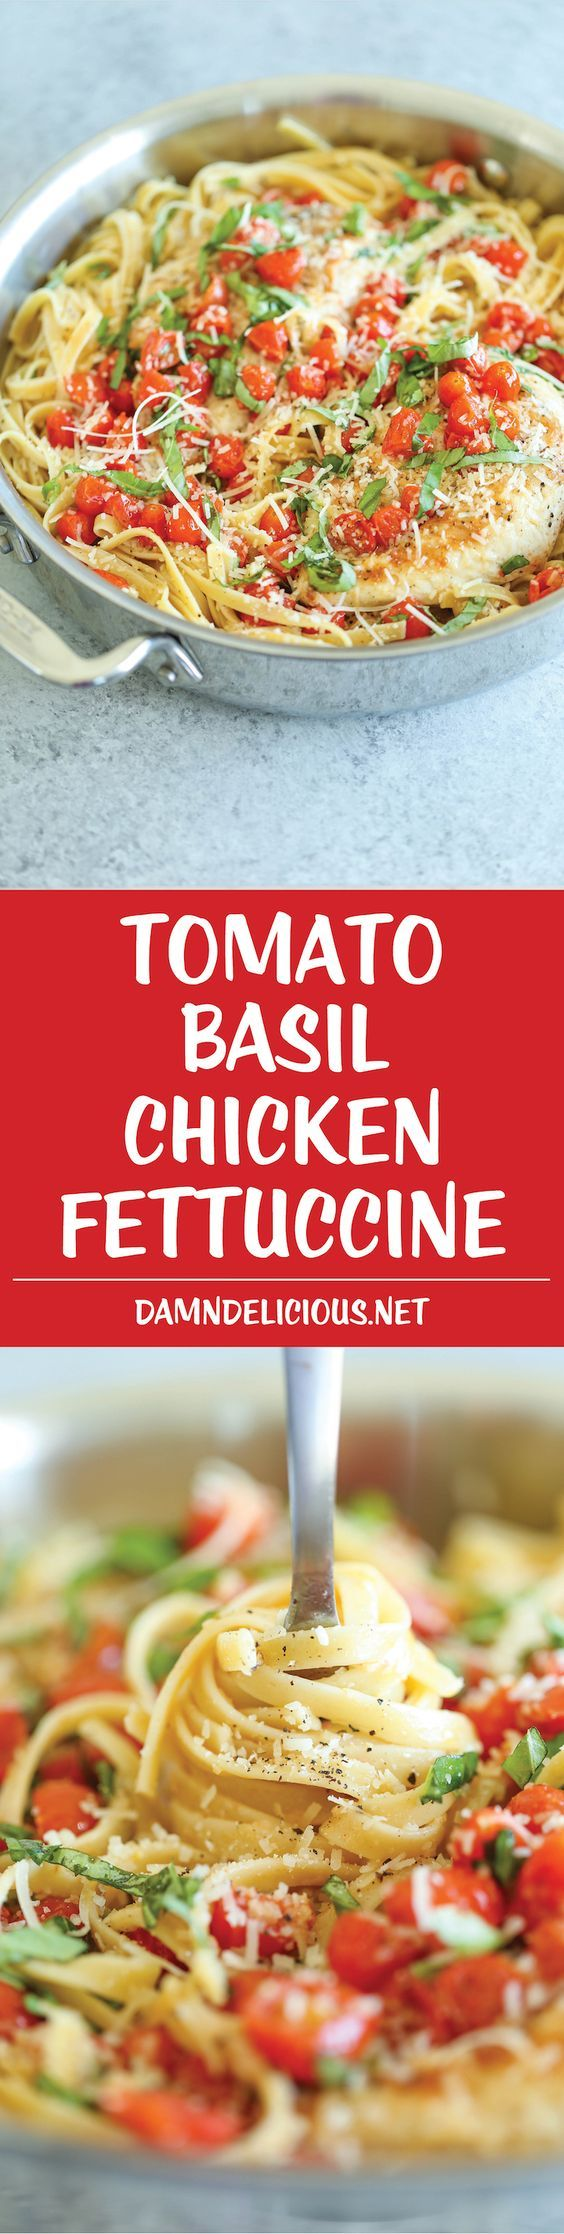 Tomato Basil Chicken Fettuccine - A quick weeknight Italian pasta dish using fresh, simple ingredients that you already have on hand! So…